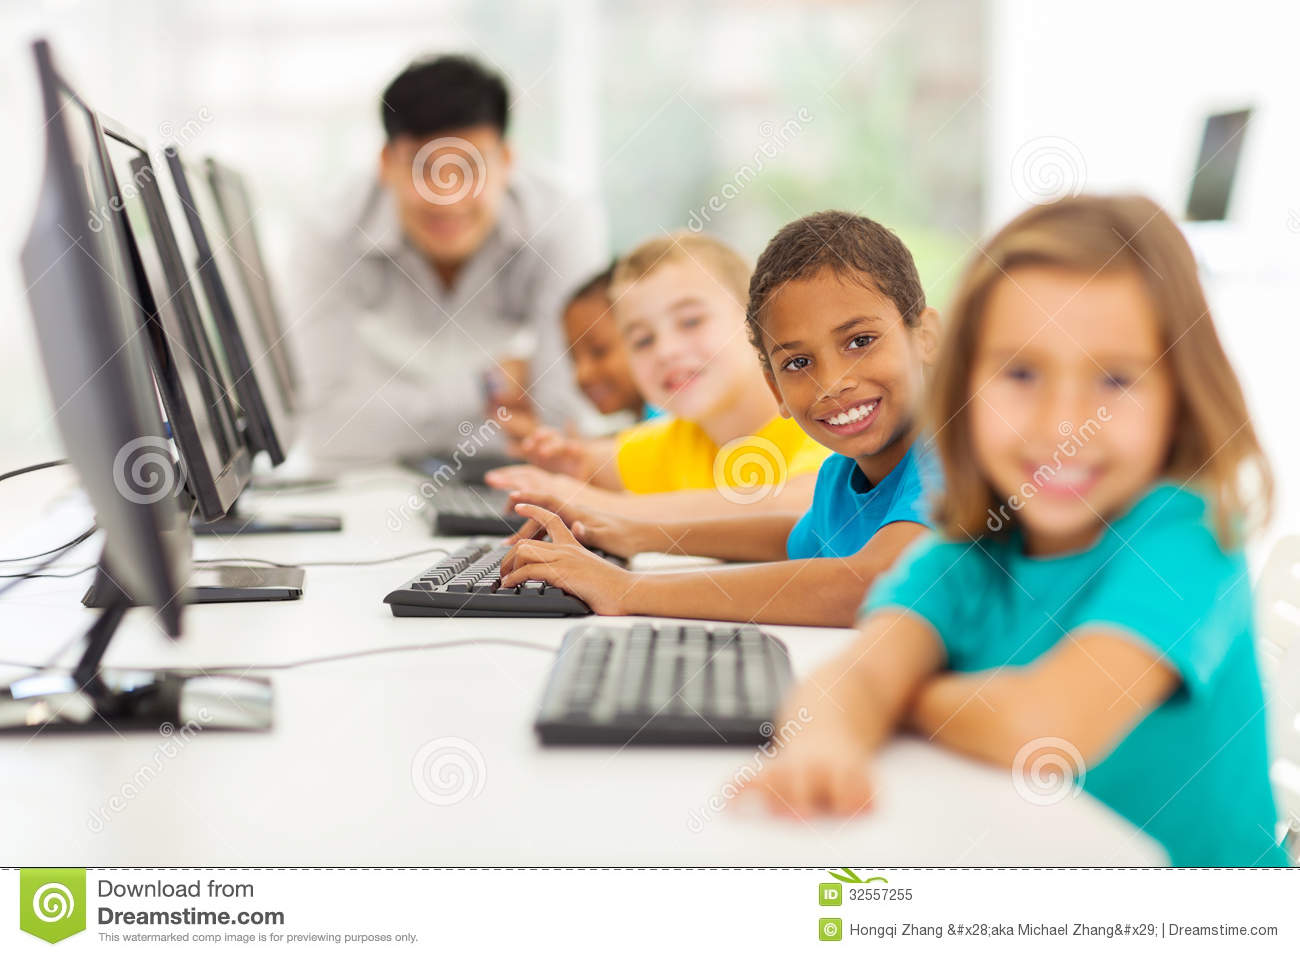 Daycare bathroom design - Children Computer Class Royalty Free Stock Photo Image